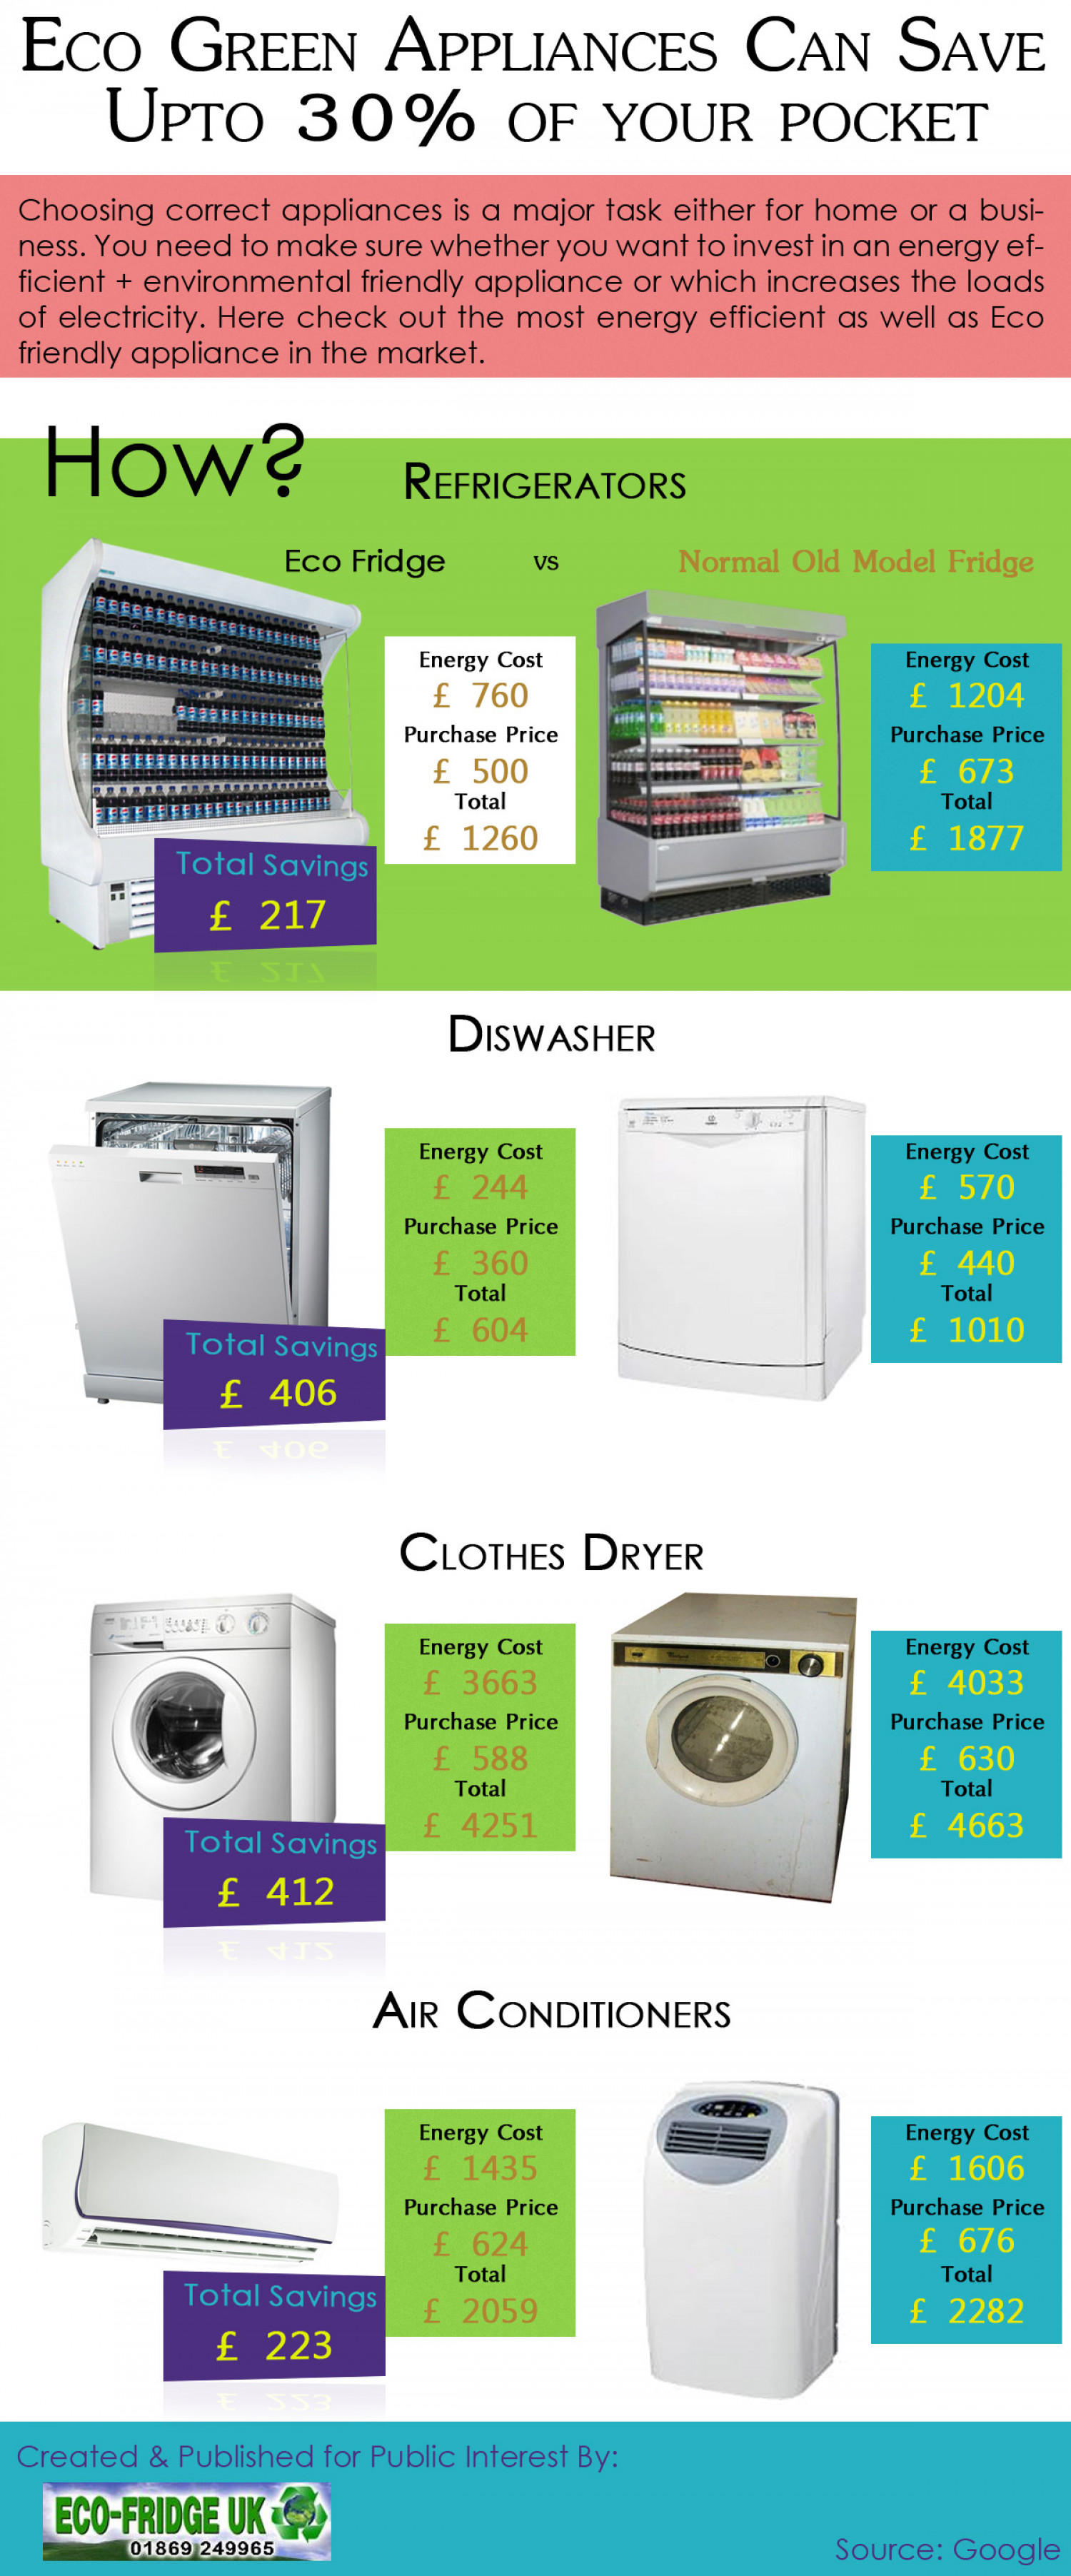 Eco-Green: Energy Efficient Appliances Can Save 30% Money/Year! Infographic